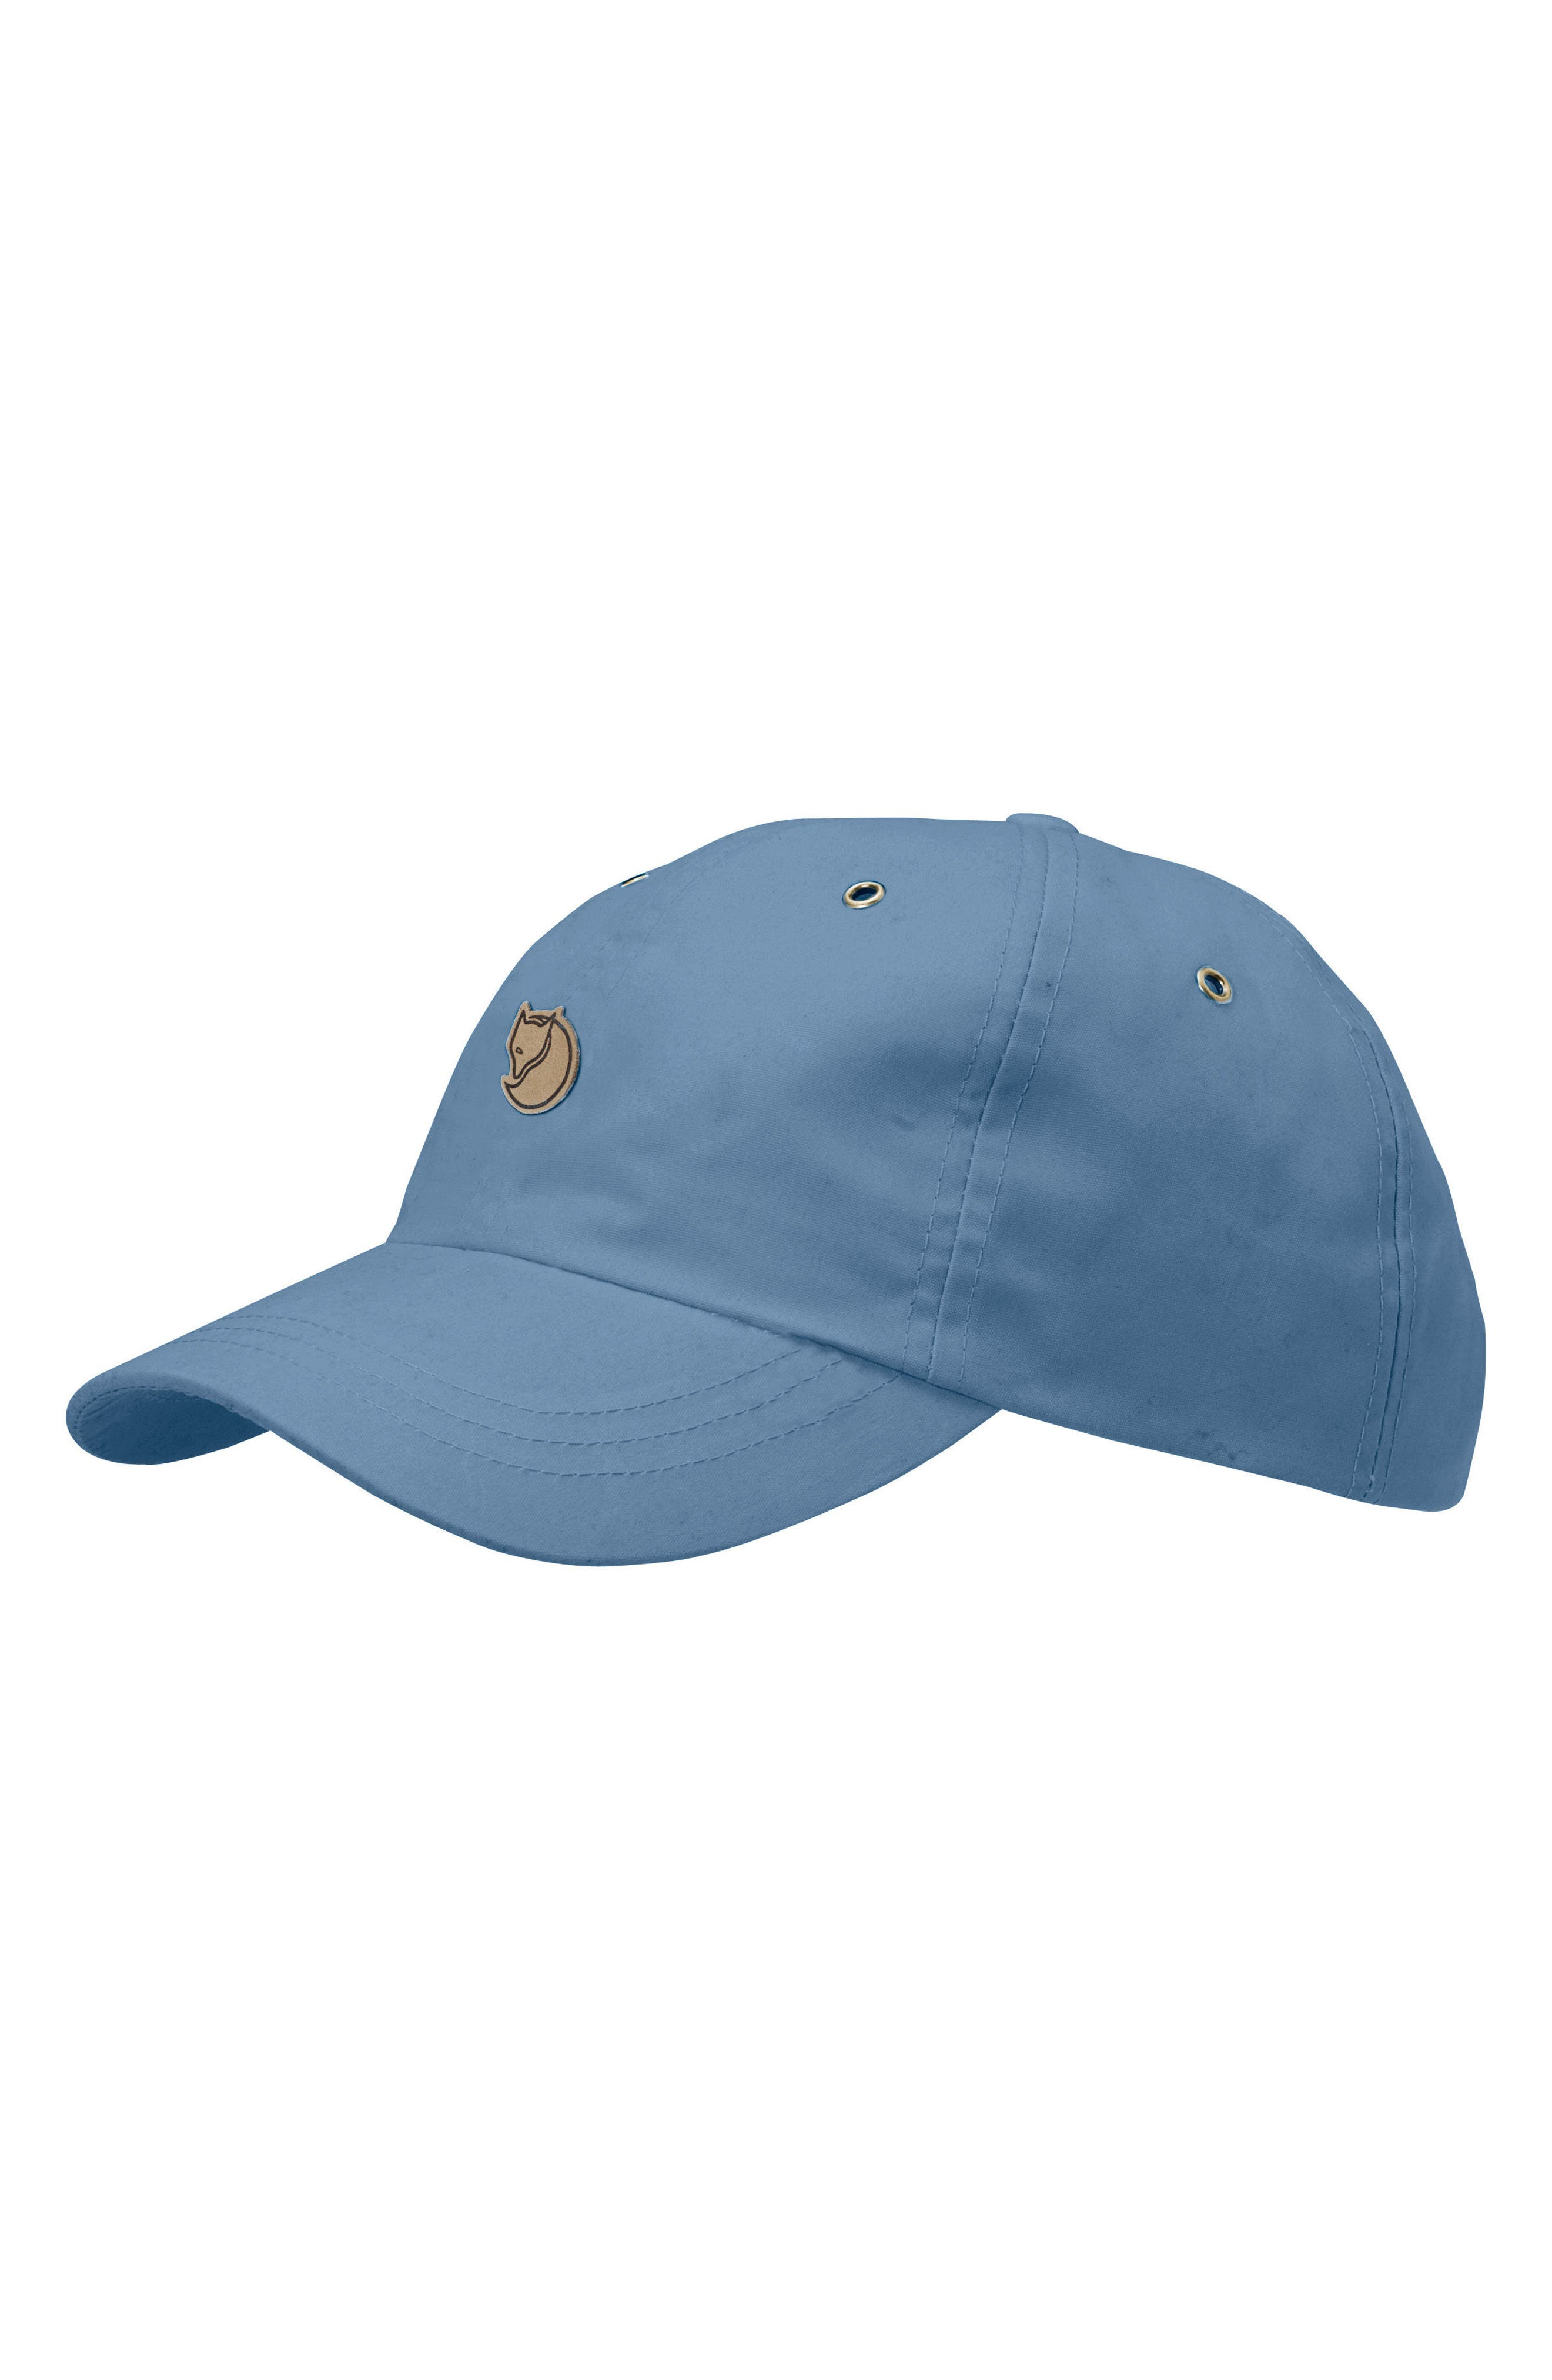 Helags Ball Cap,                         Main,                         color, BLUE RIDGE